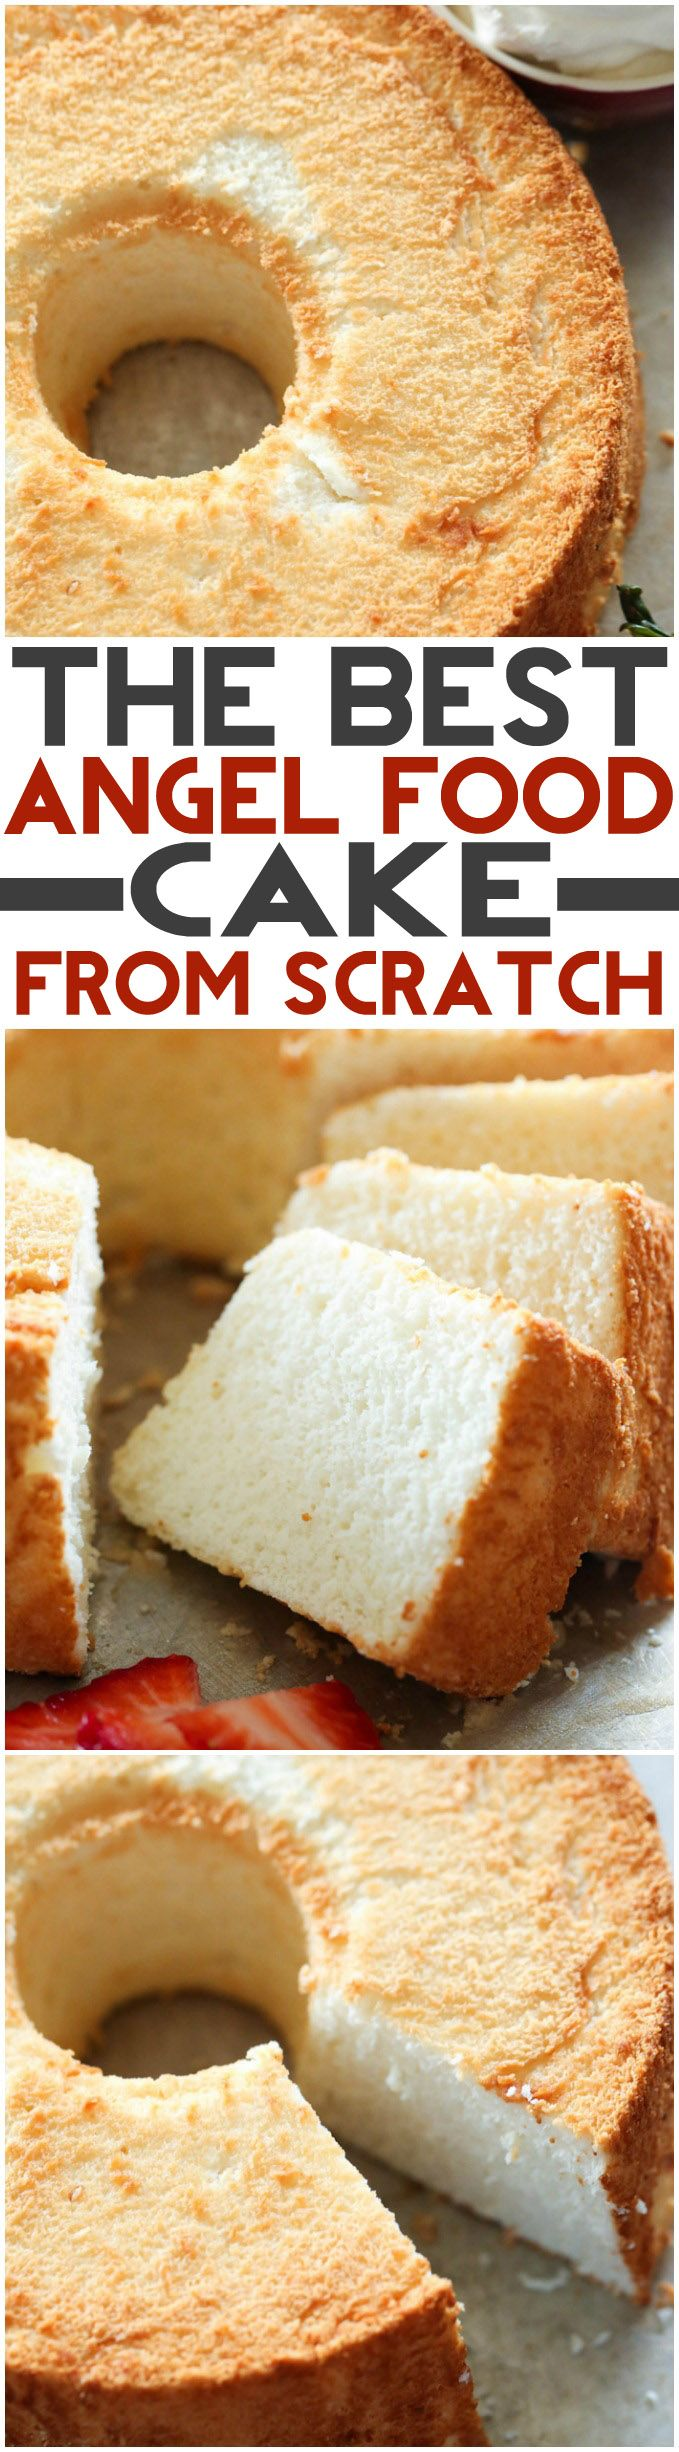 THE BEST Angel Food Cake from scratch! This cake has the most perfect texture and flavor.